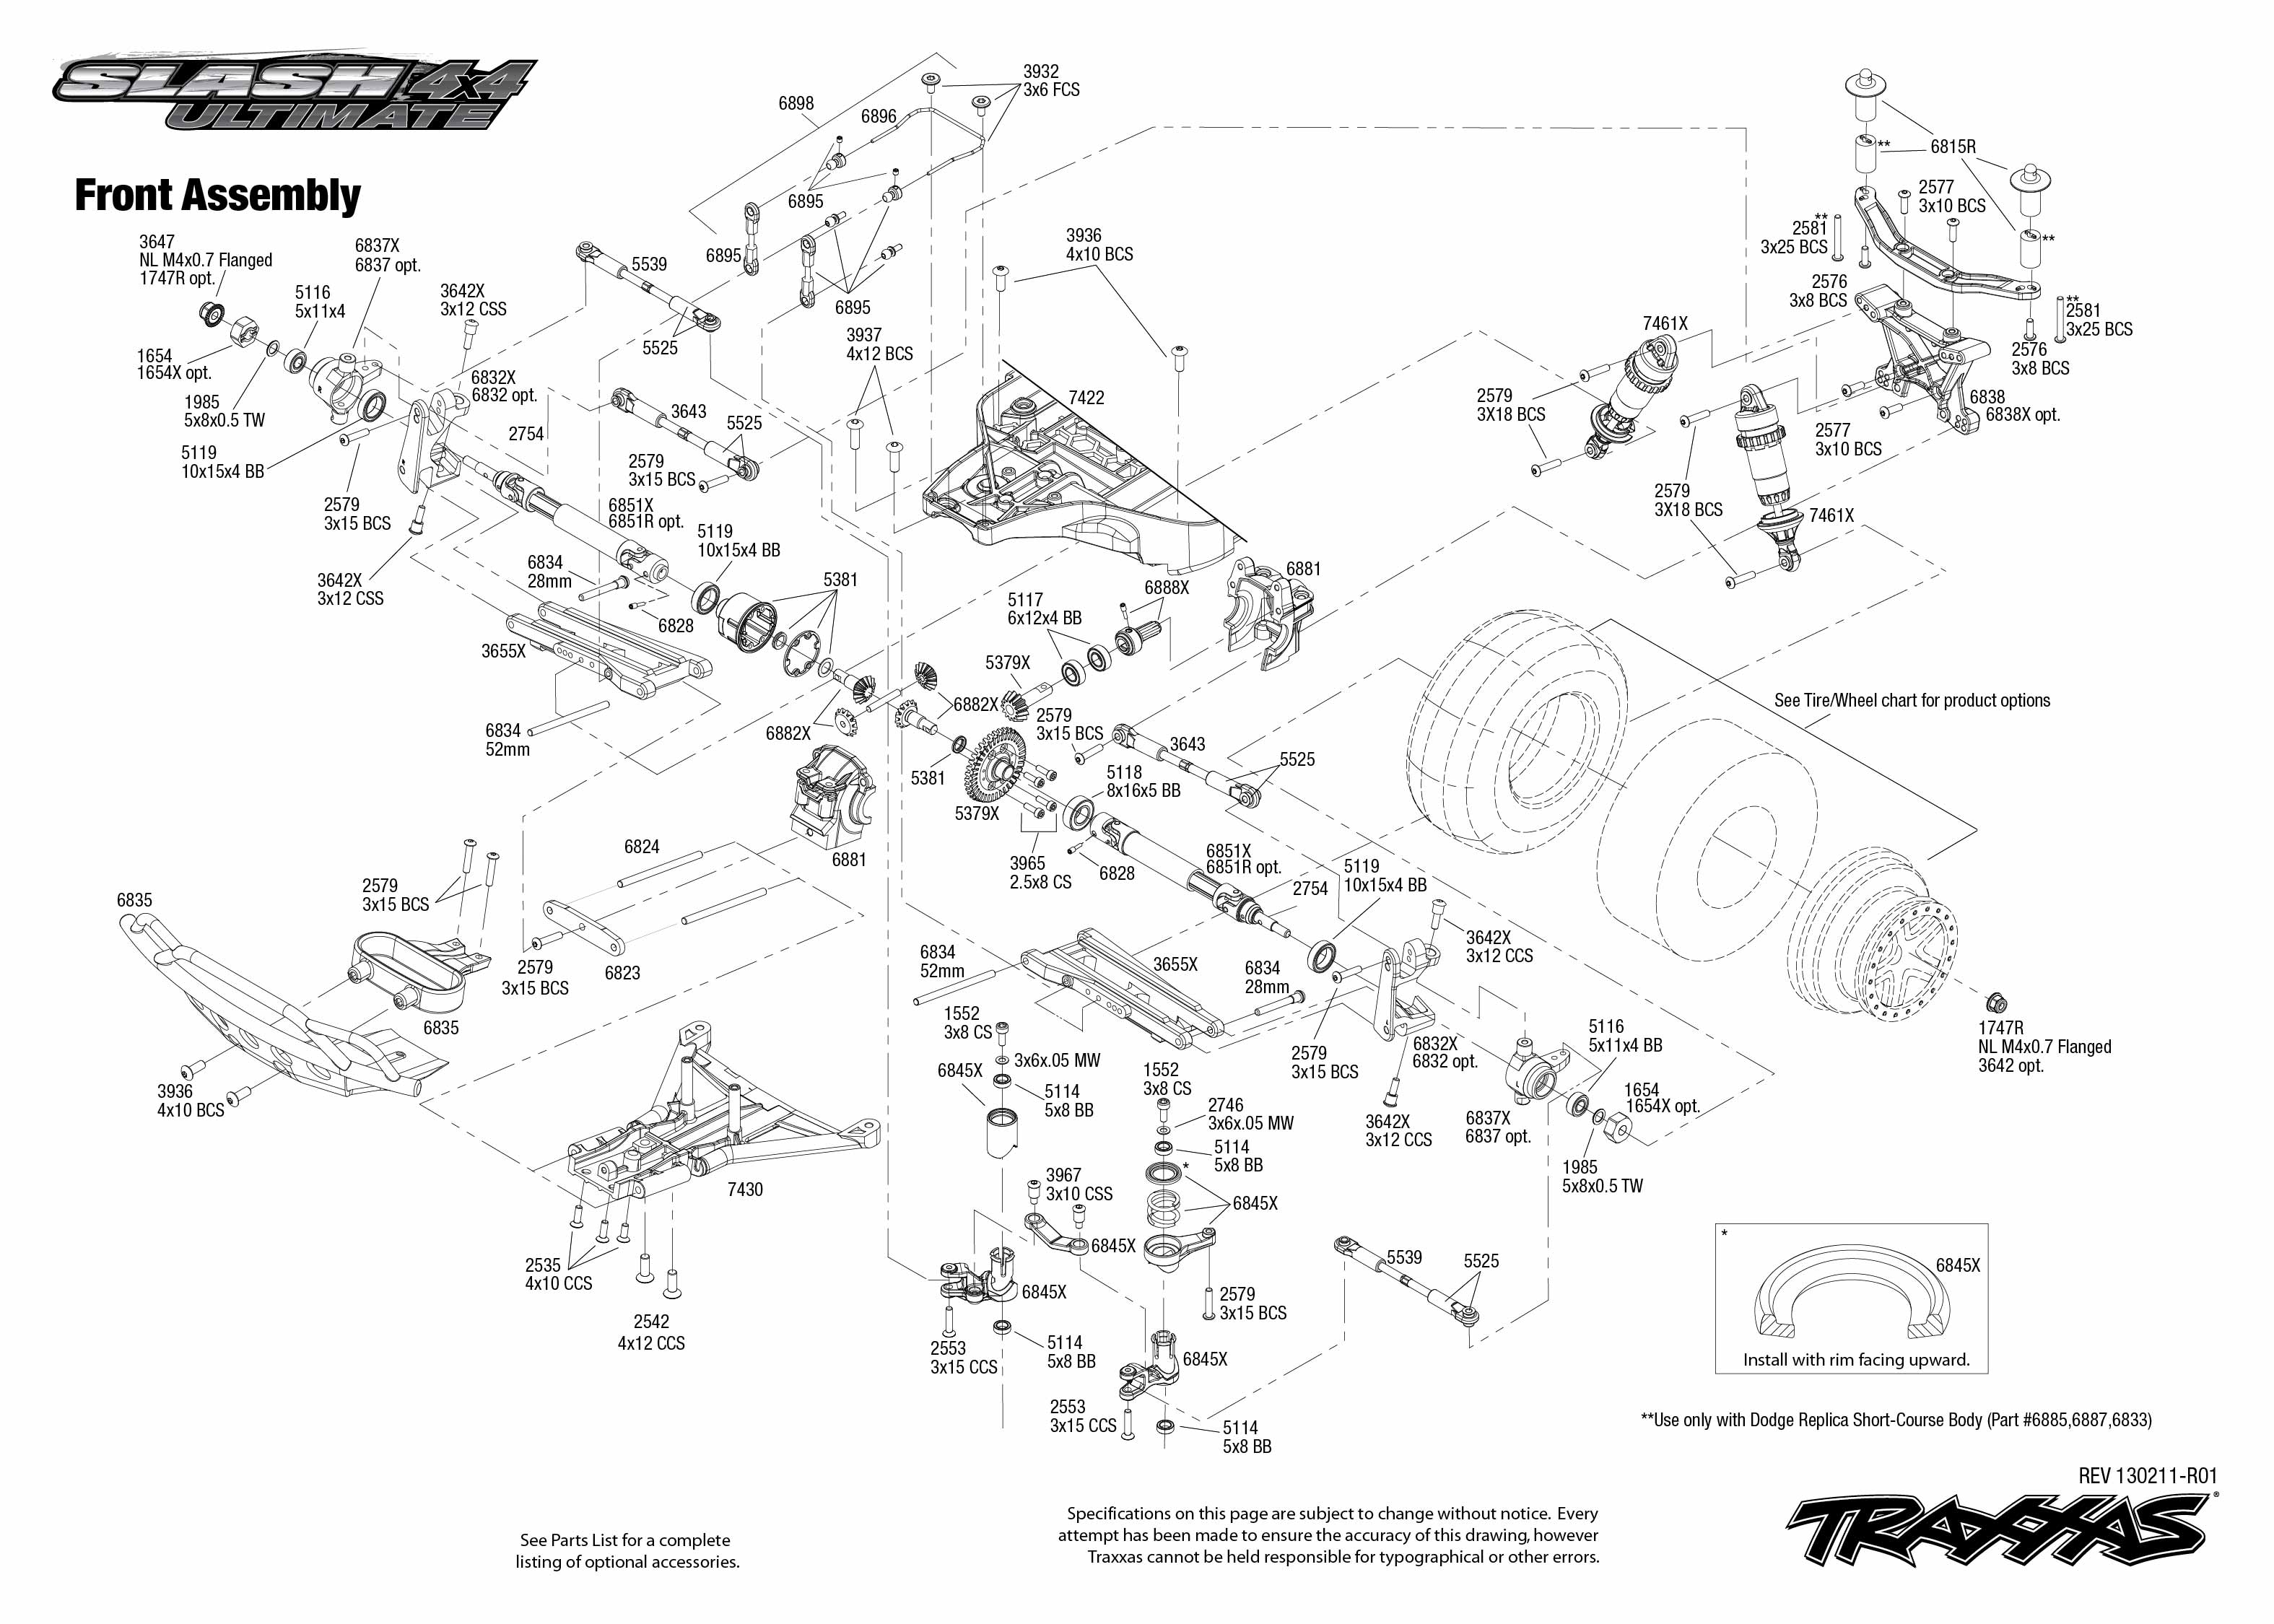 Exploded view: Traxxas Slash Ultimate 1:10 4WD VXL LCG TQi